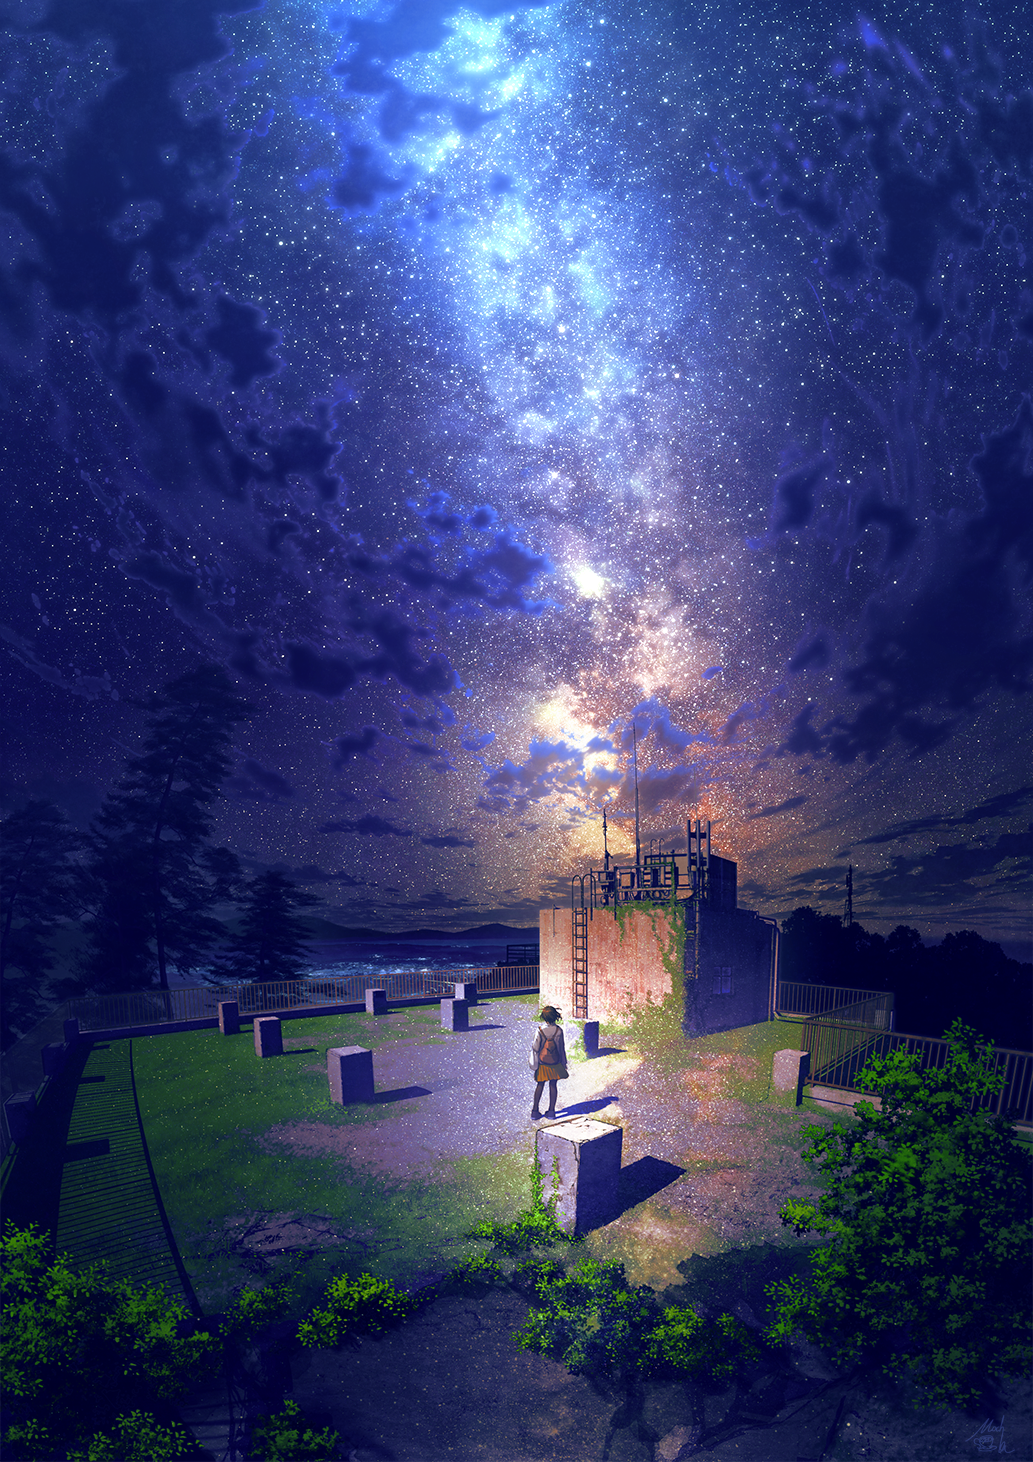 1girl backpack bag black_hair black_legwear clouds commentary_request facing_away from_behind highres jacket ladder mocha_(cotton) moss night night_sky orange_skirt original overgrown pantyhose plant pleated_skirt railing revision rooftop scenery skirt sky solo standing star_(sky) starry_sky tree white_jacket wide_shot